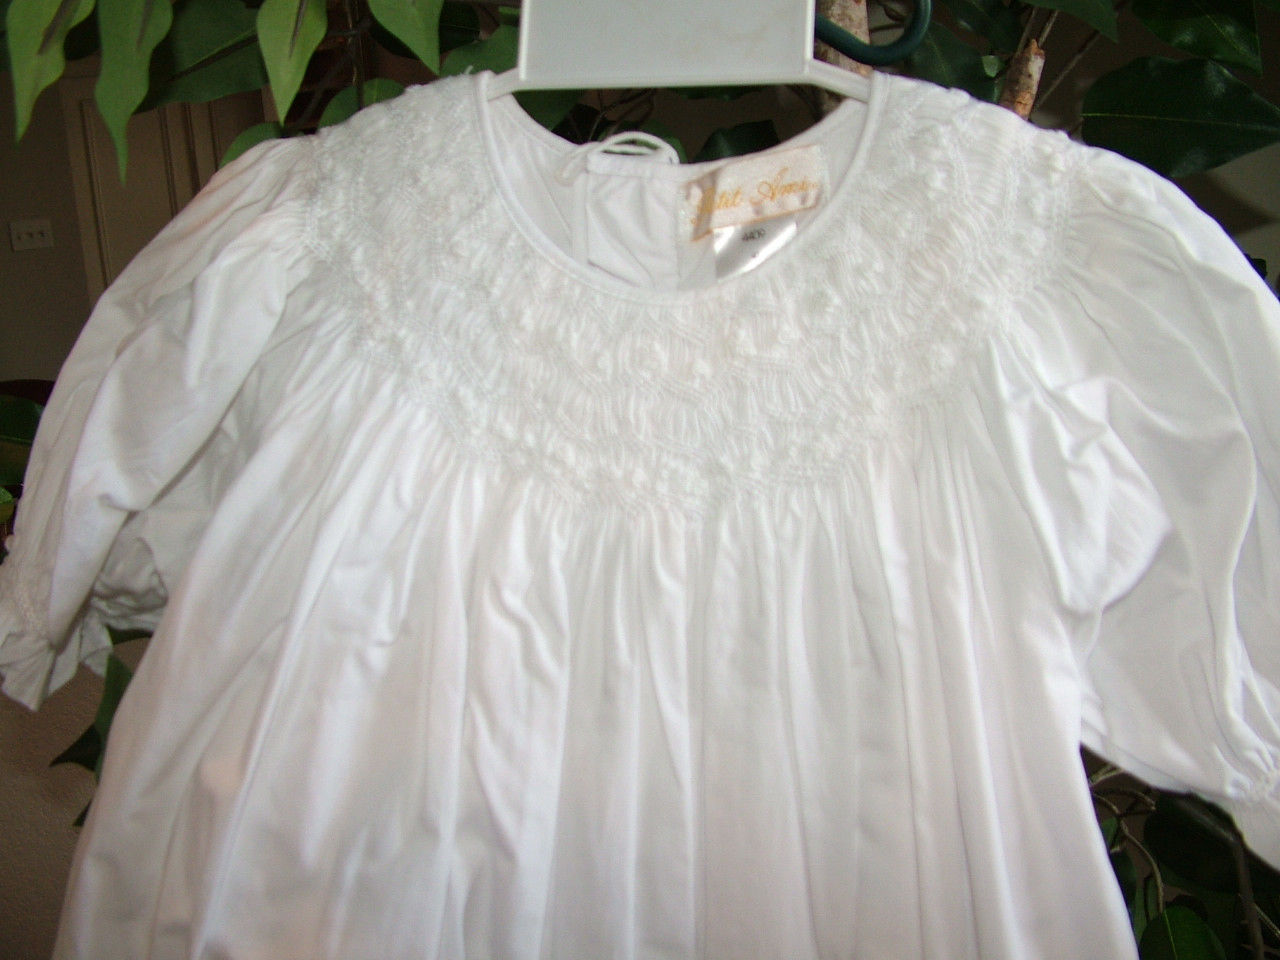 Image 2 of Gorgeous Petit Ami White Heirloom Boutique Lined Party Dress, Wedding - White -